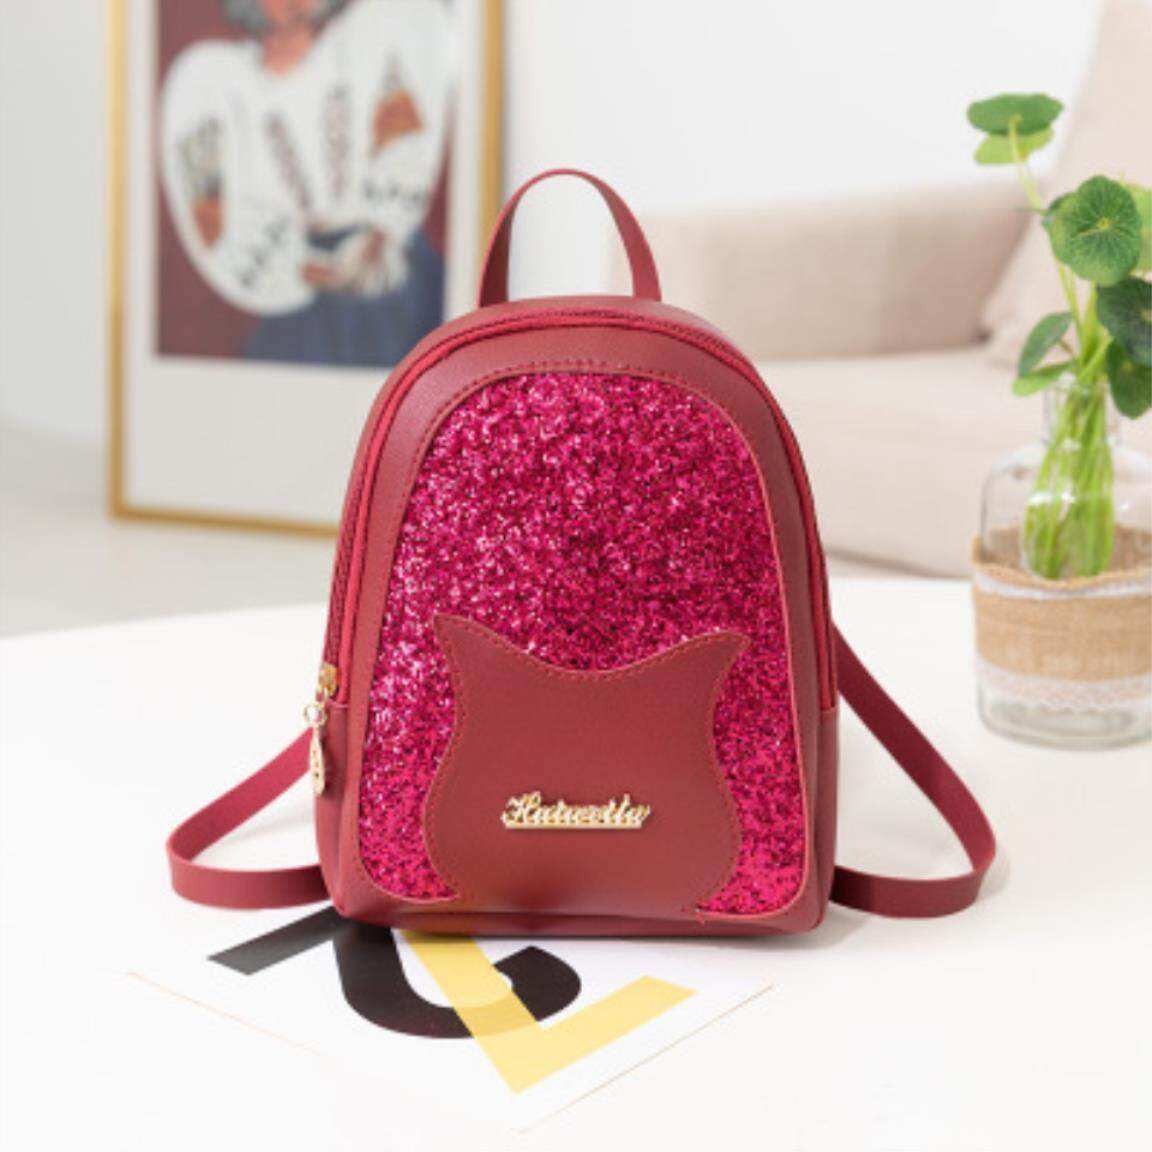 97a4c37bc47 ⭐High Quality⭐Girl S Small Backpack 2019 Brand Fashion Shining Sequin  Shoulder Bag Women Multi-function Mini Back Pack. Teenage Girls Kids